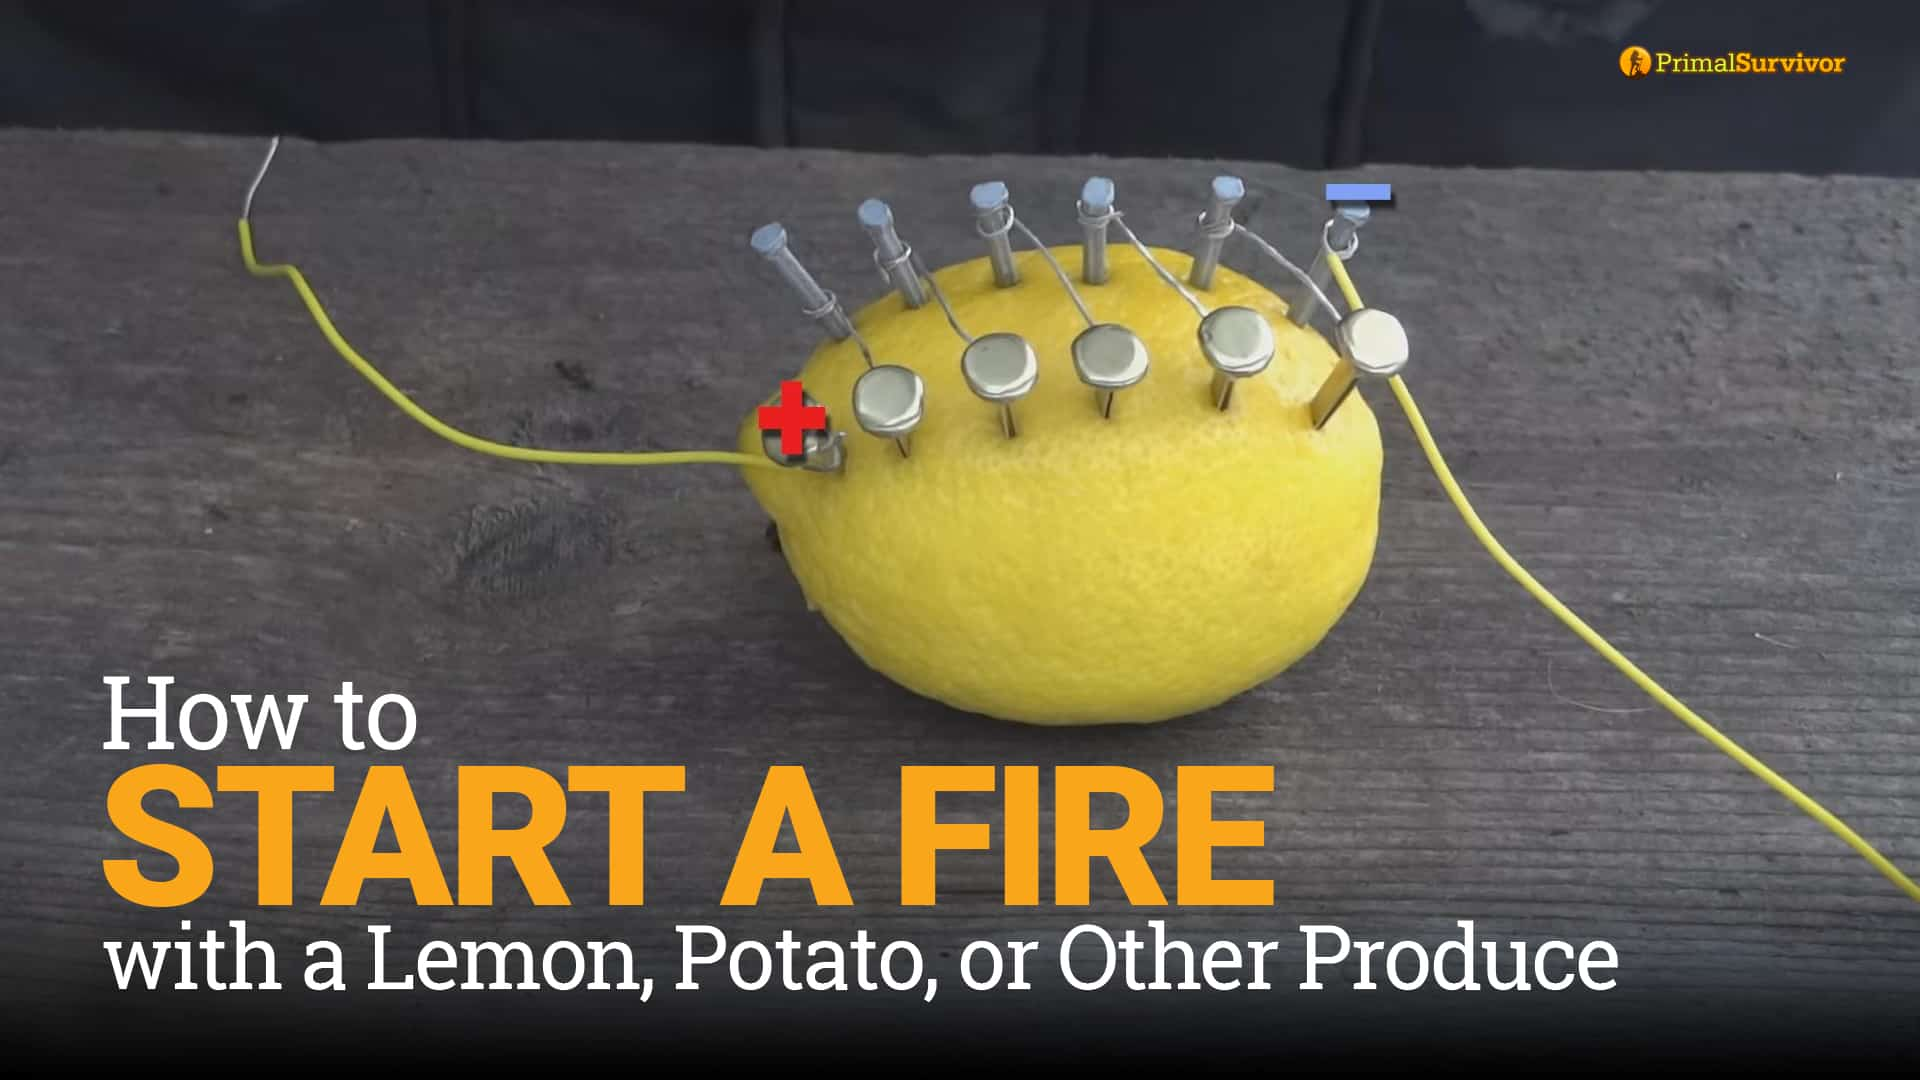 How to Start a Fire with a Lemon, Potato, or Other Produce